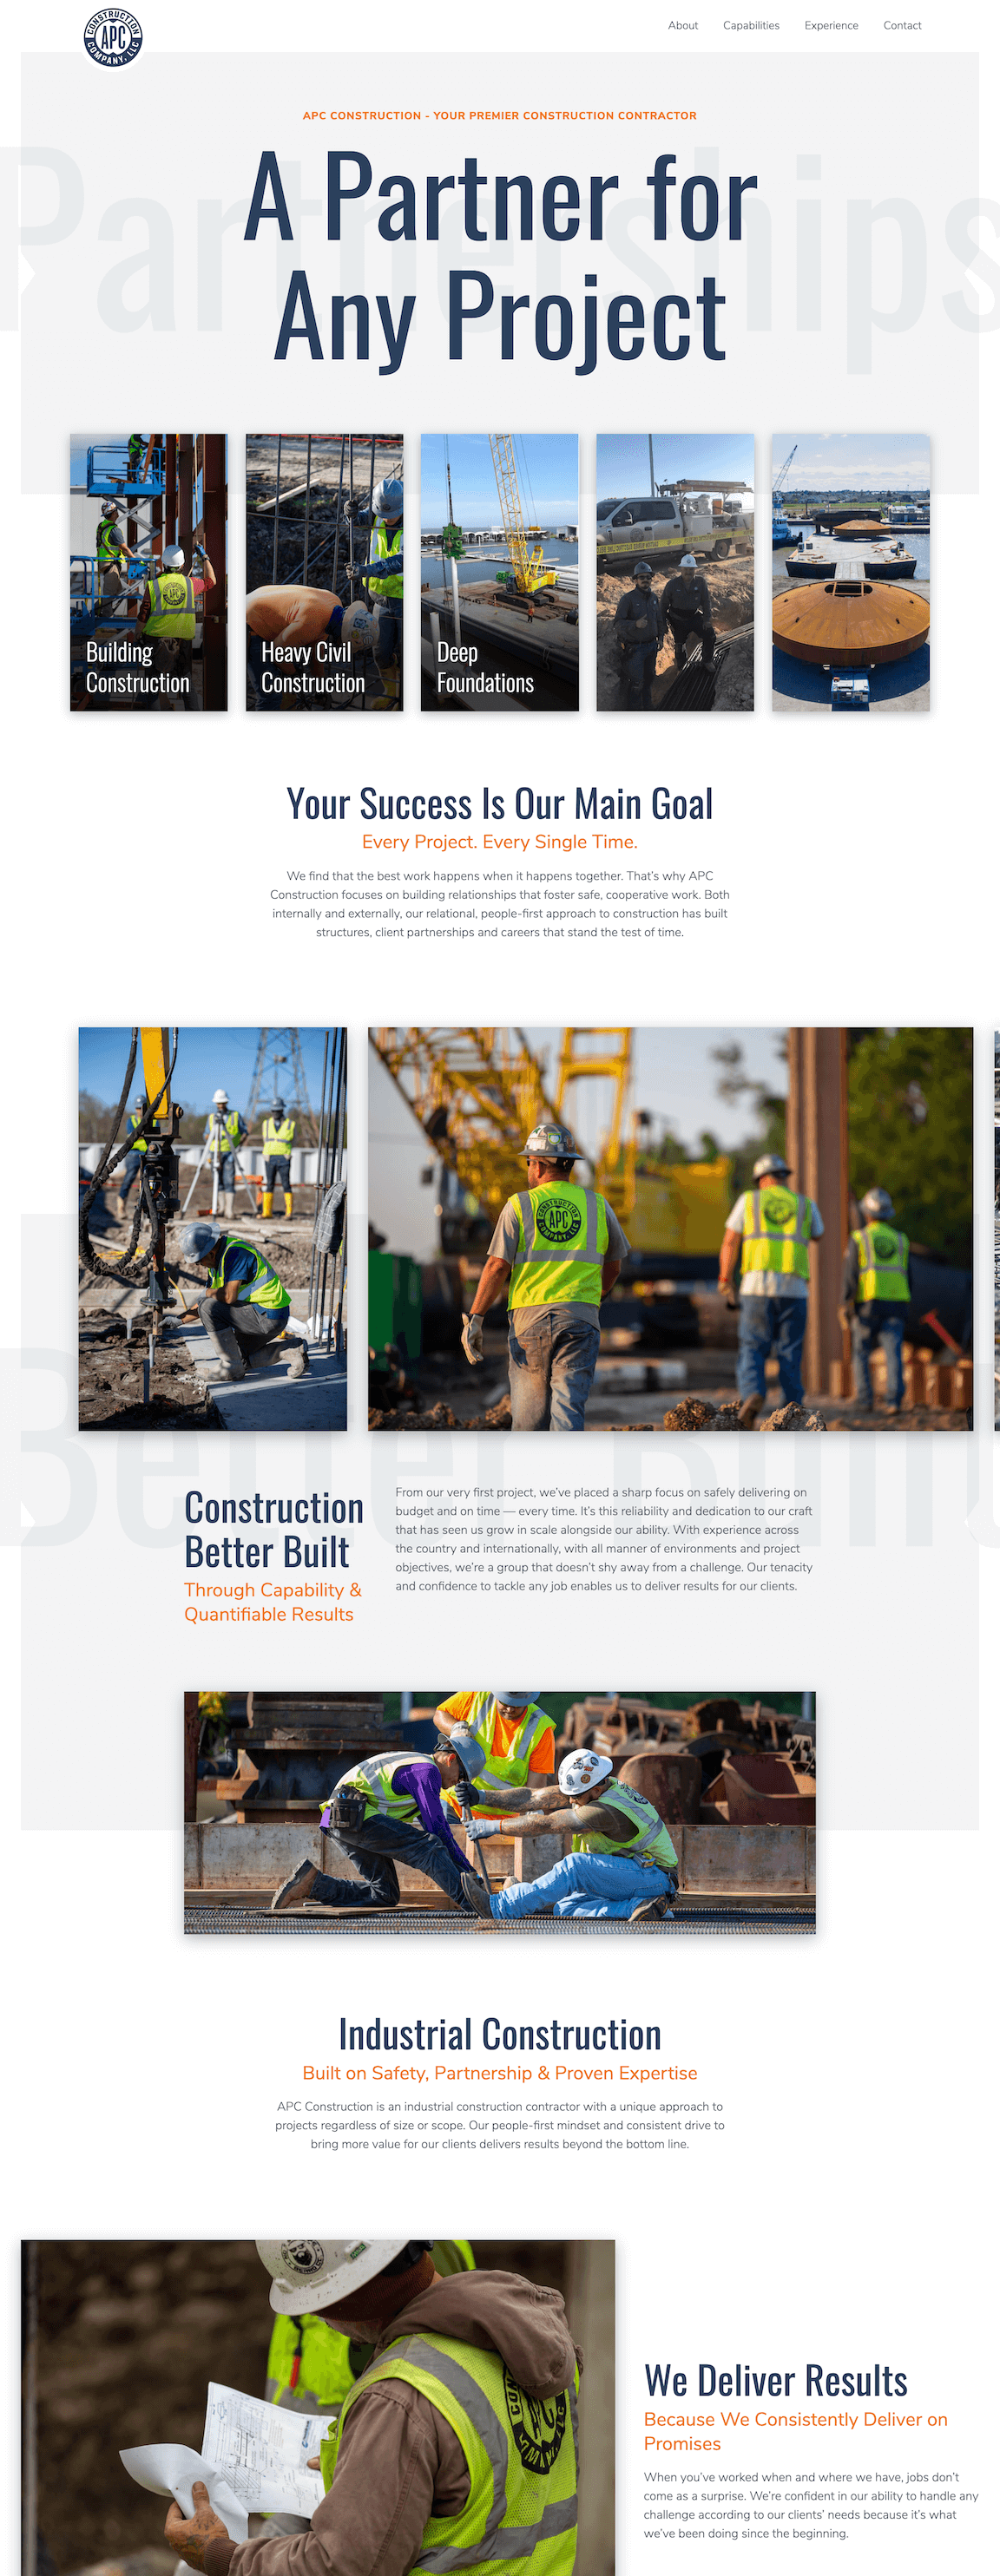 APC Construction website Homepage designed and developed by Chase Whitney